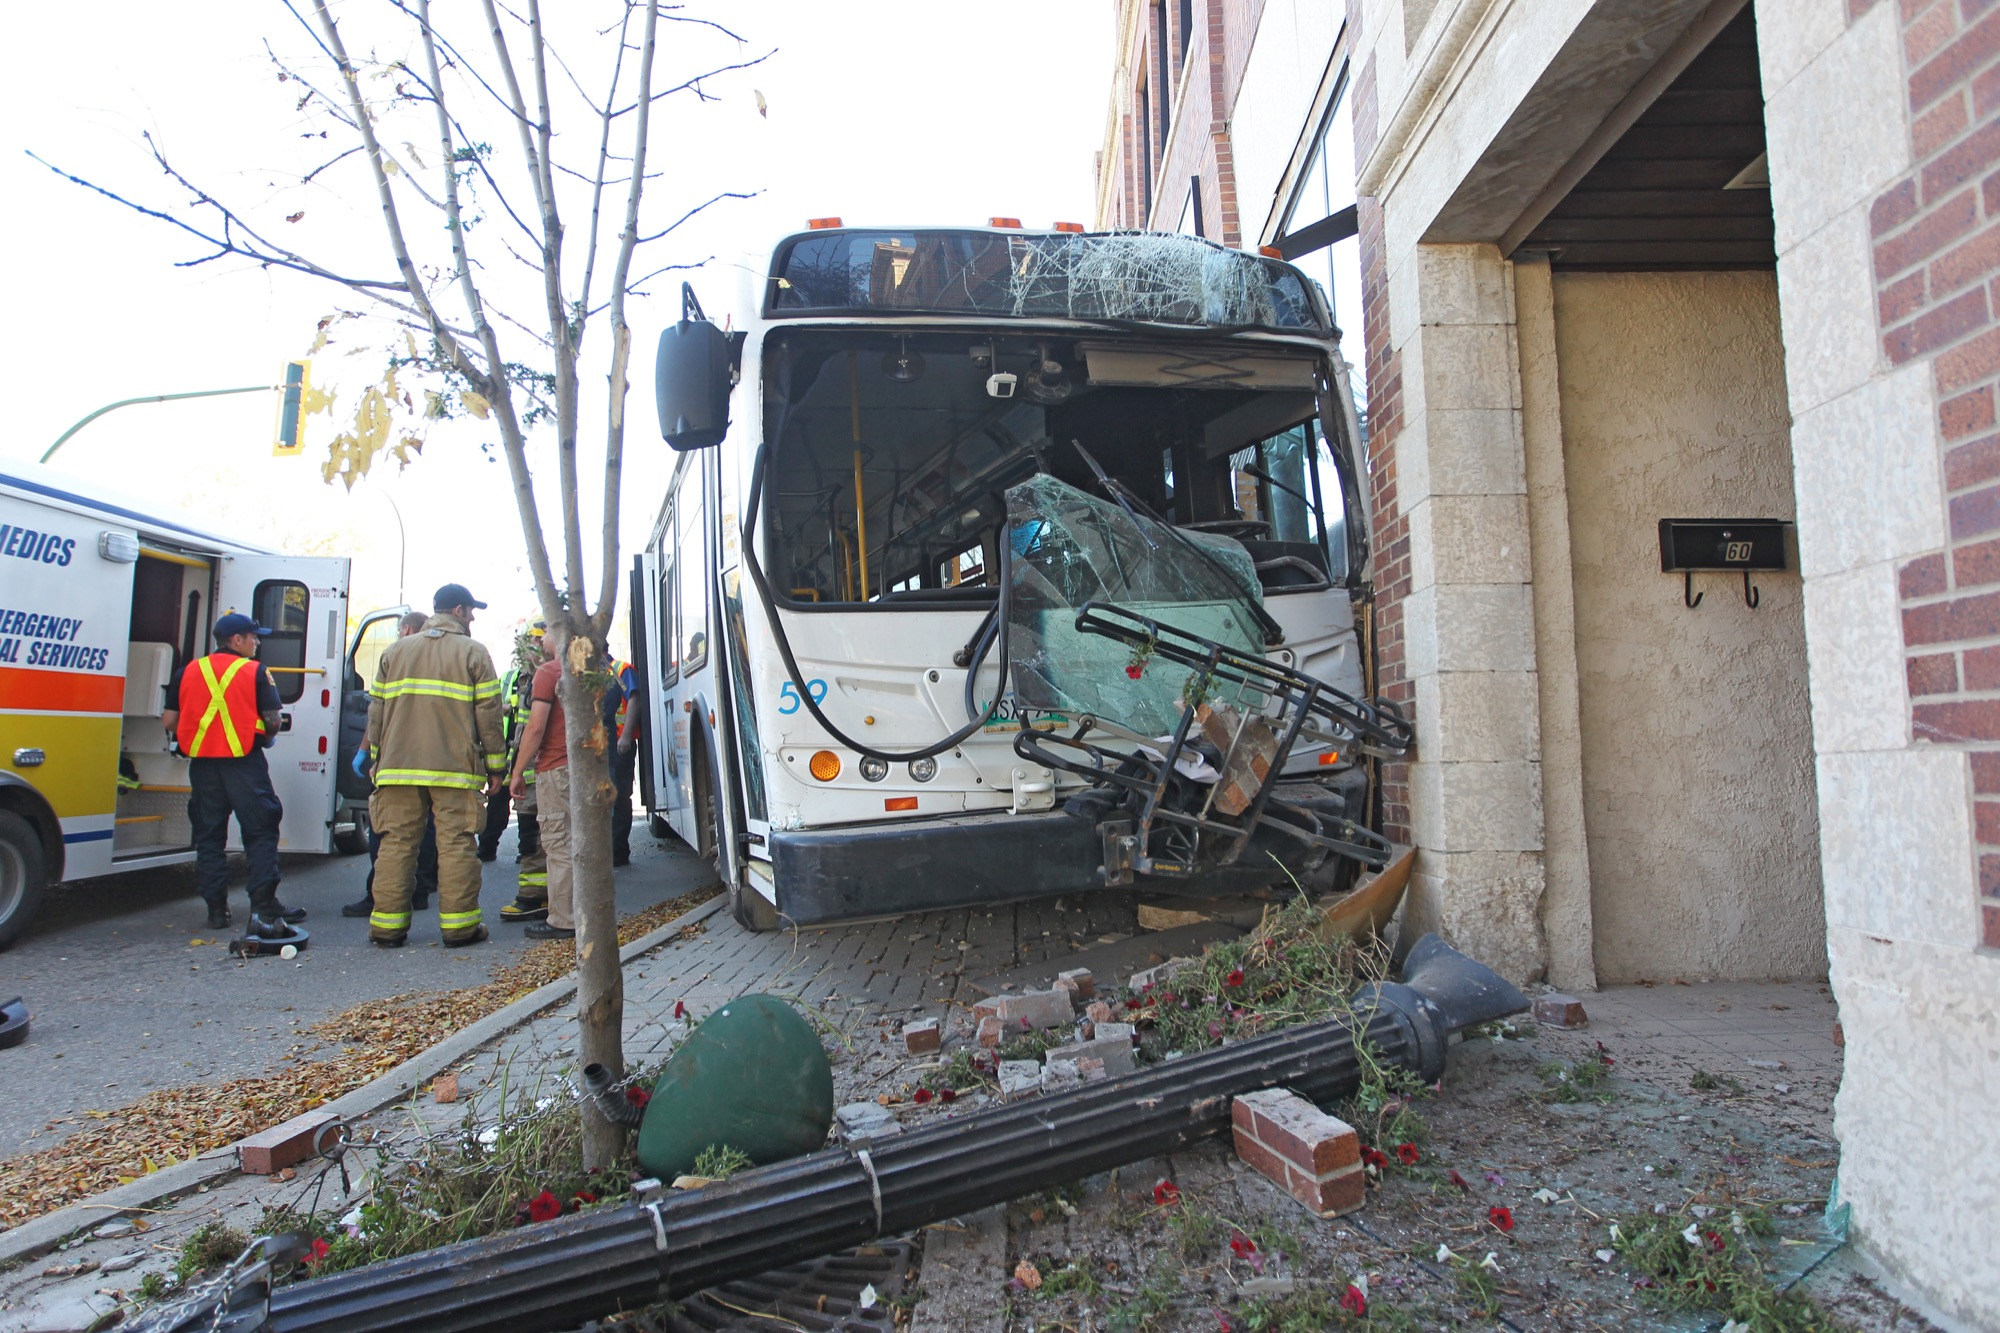 A stolen car crashed into a bus and forcing it to smash into the front of a business shortly before 4 p.m. on Friday afternoon. A 12-year-old Winnipeg boy has been charged.